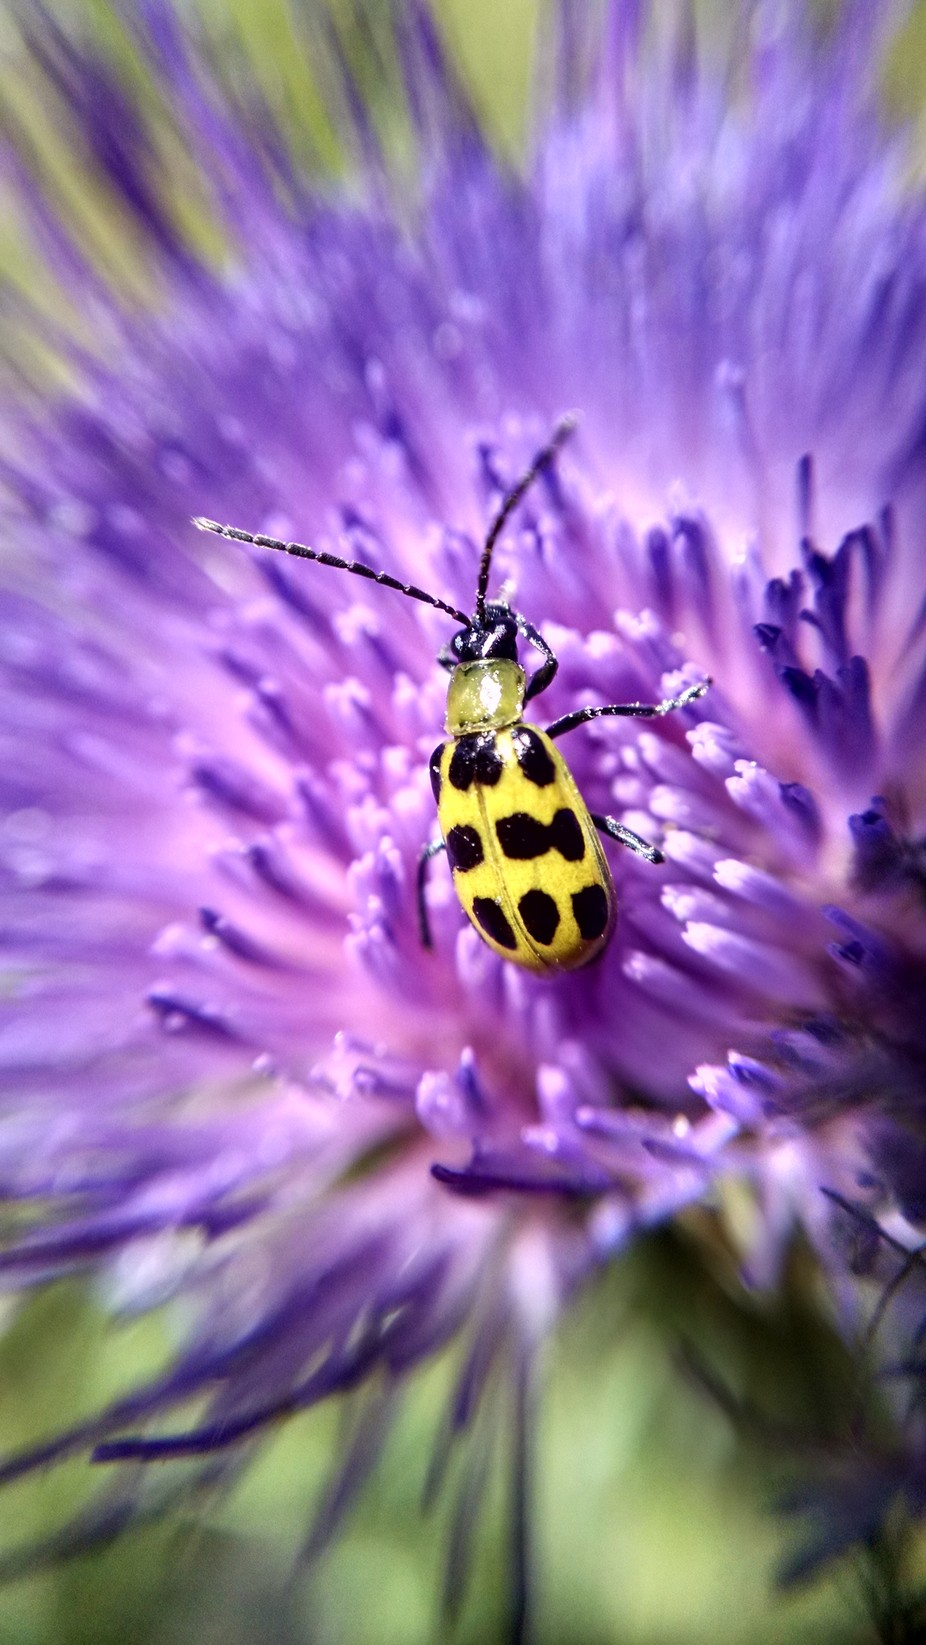 Cucumber beetle on a thistle by Curlycooley - Macro And Patterns Photo Contest